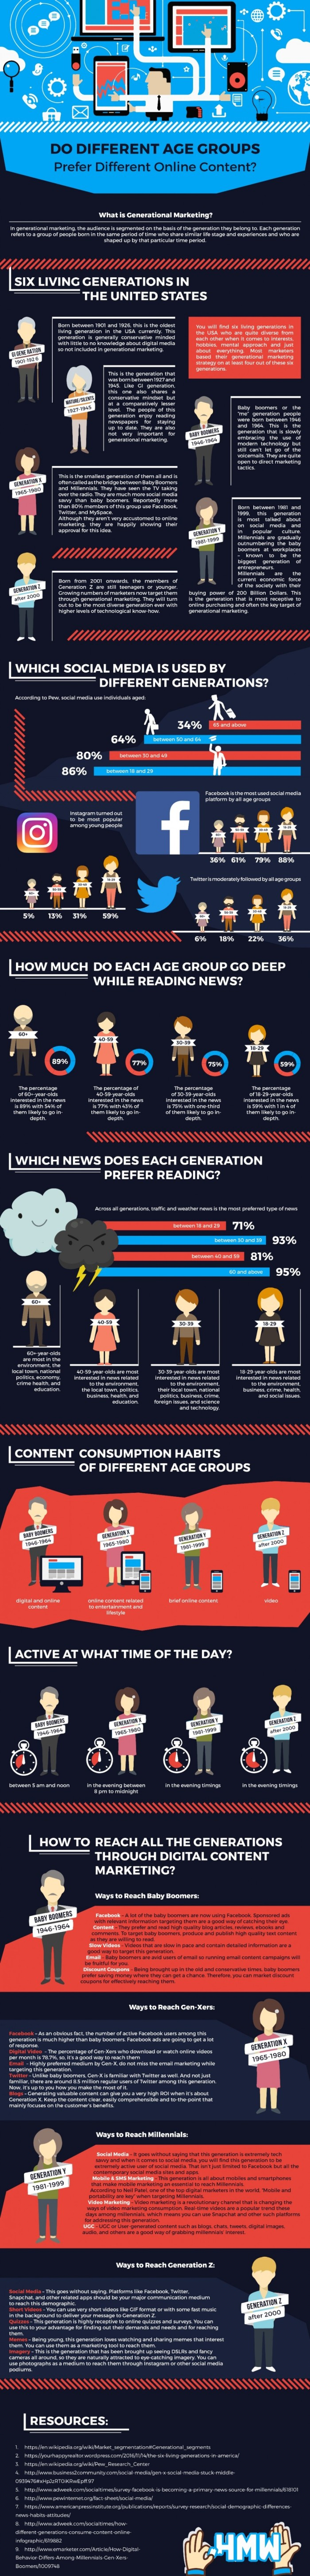 generational content info